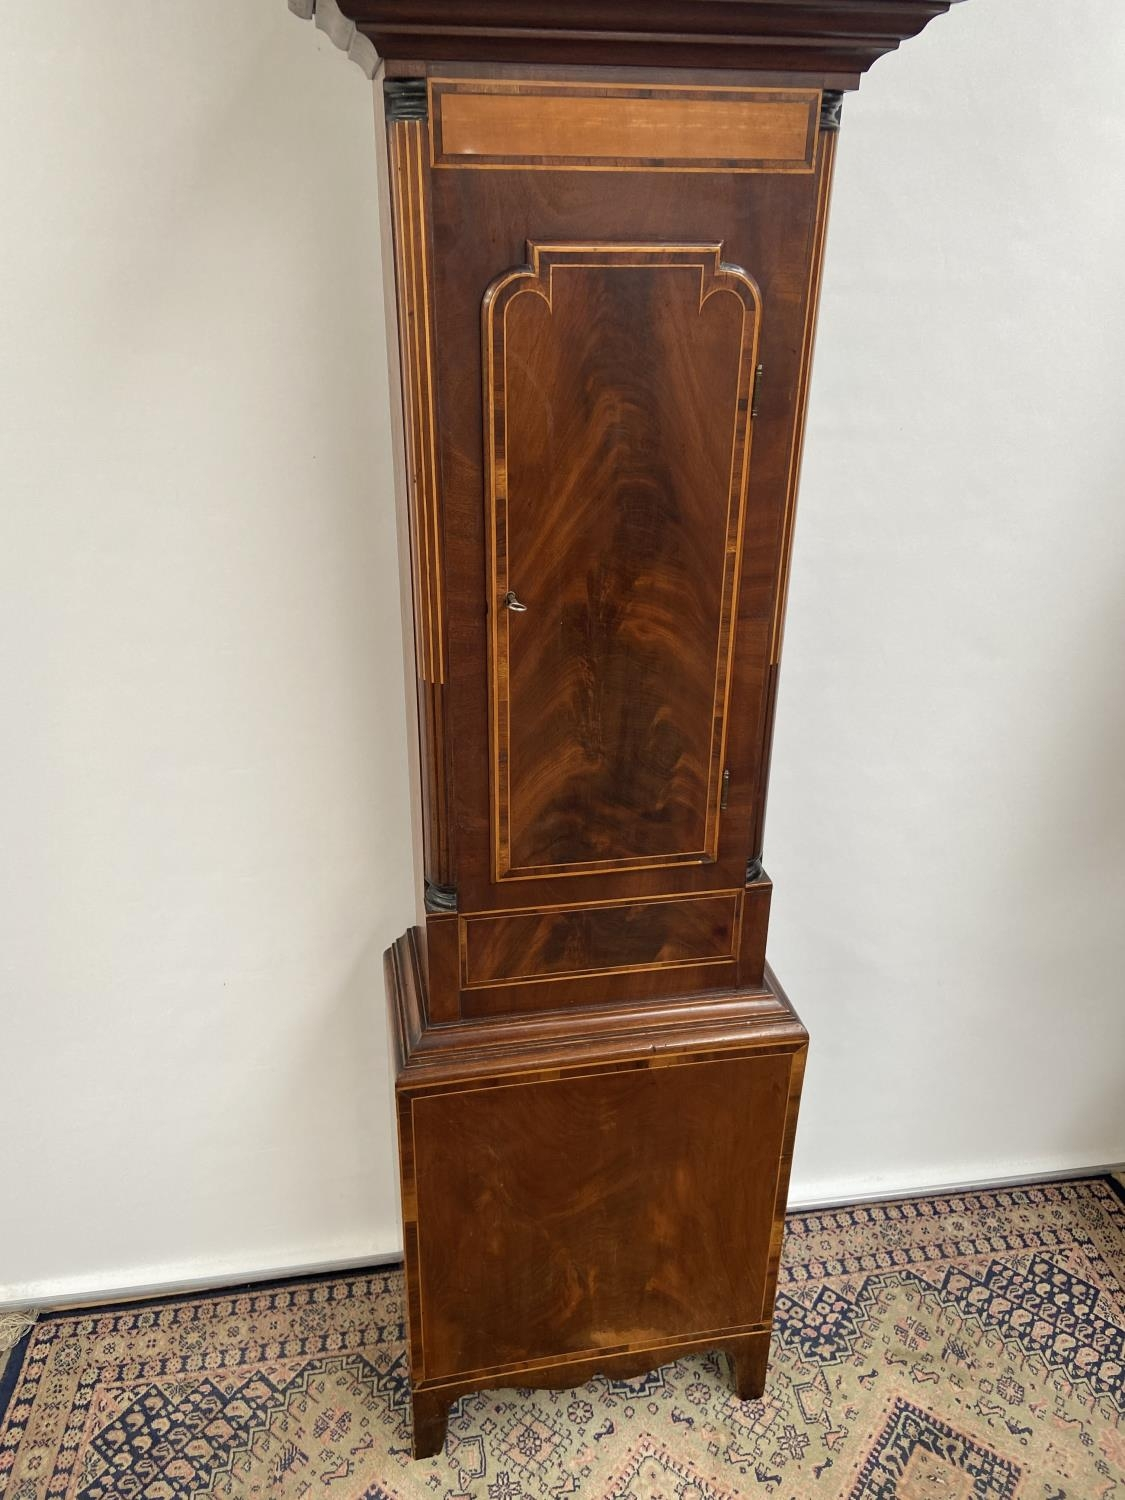 A 19th century Grandfather clock in a working condition [24x44x24cm] - Image 7 of 12